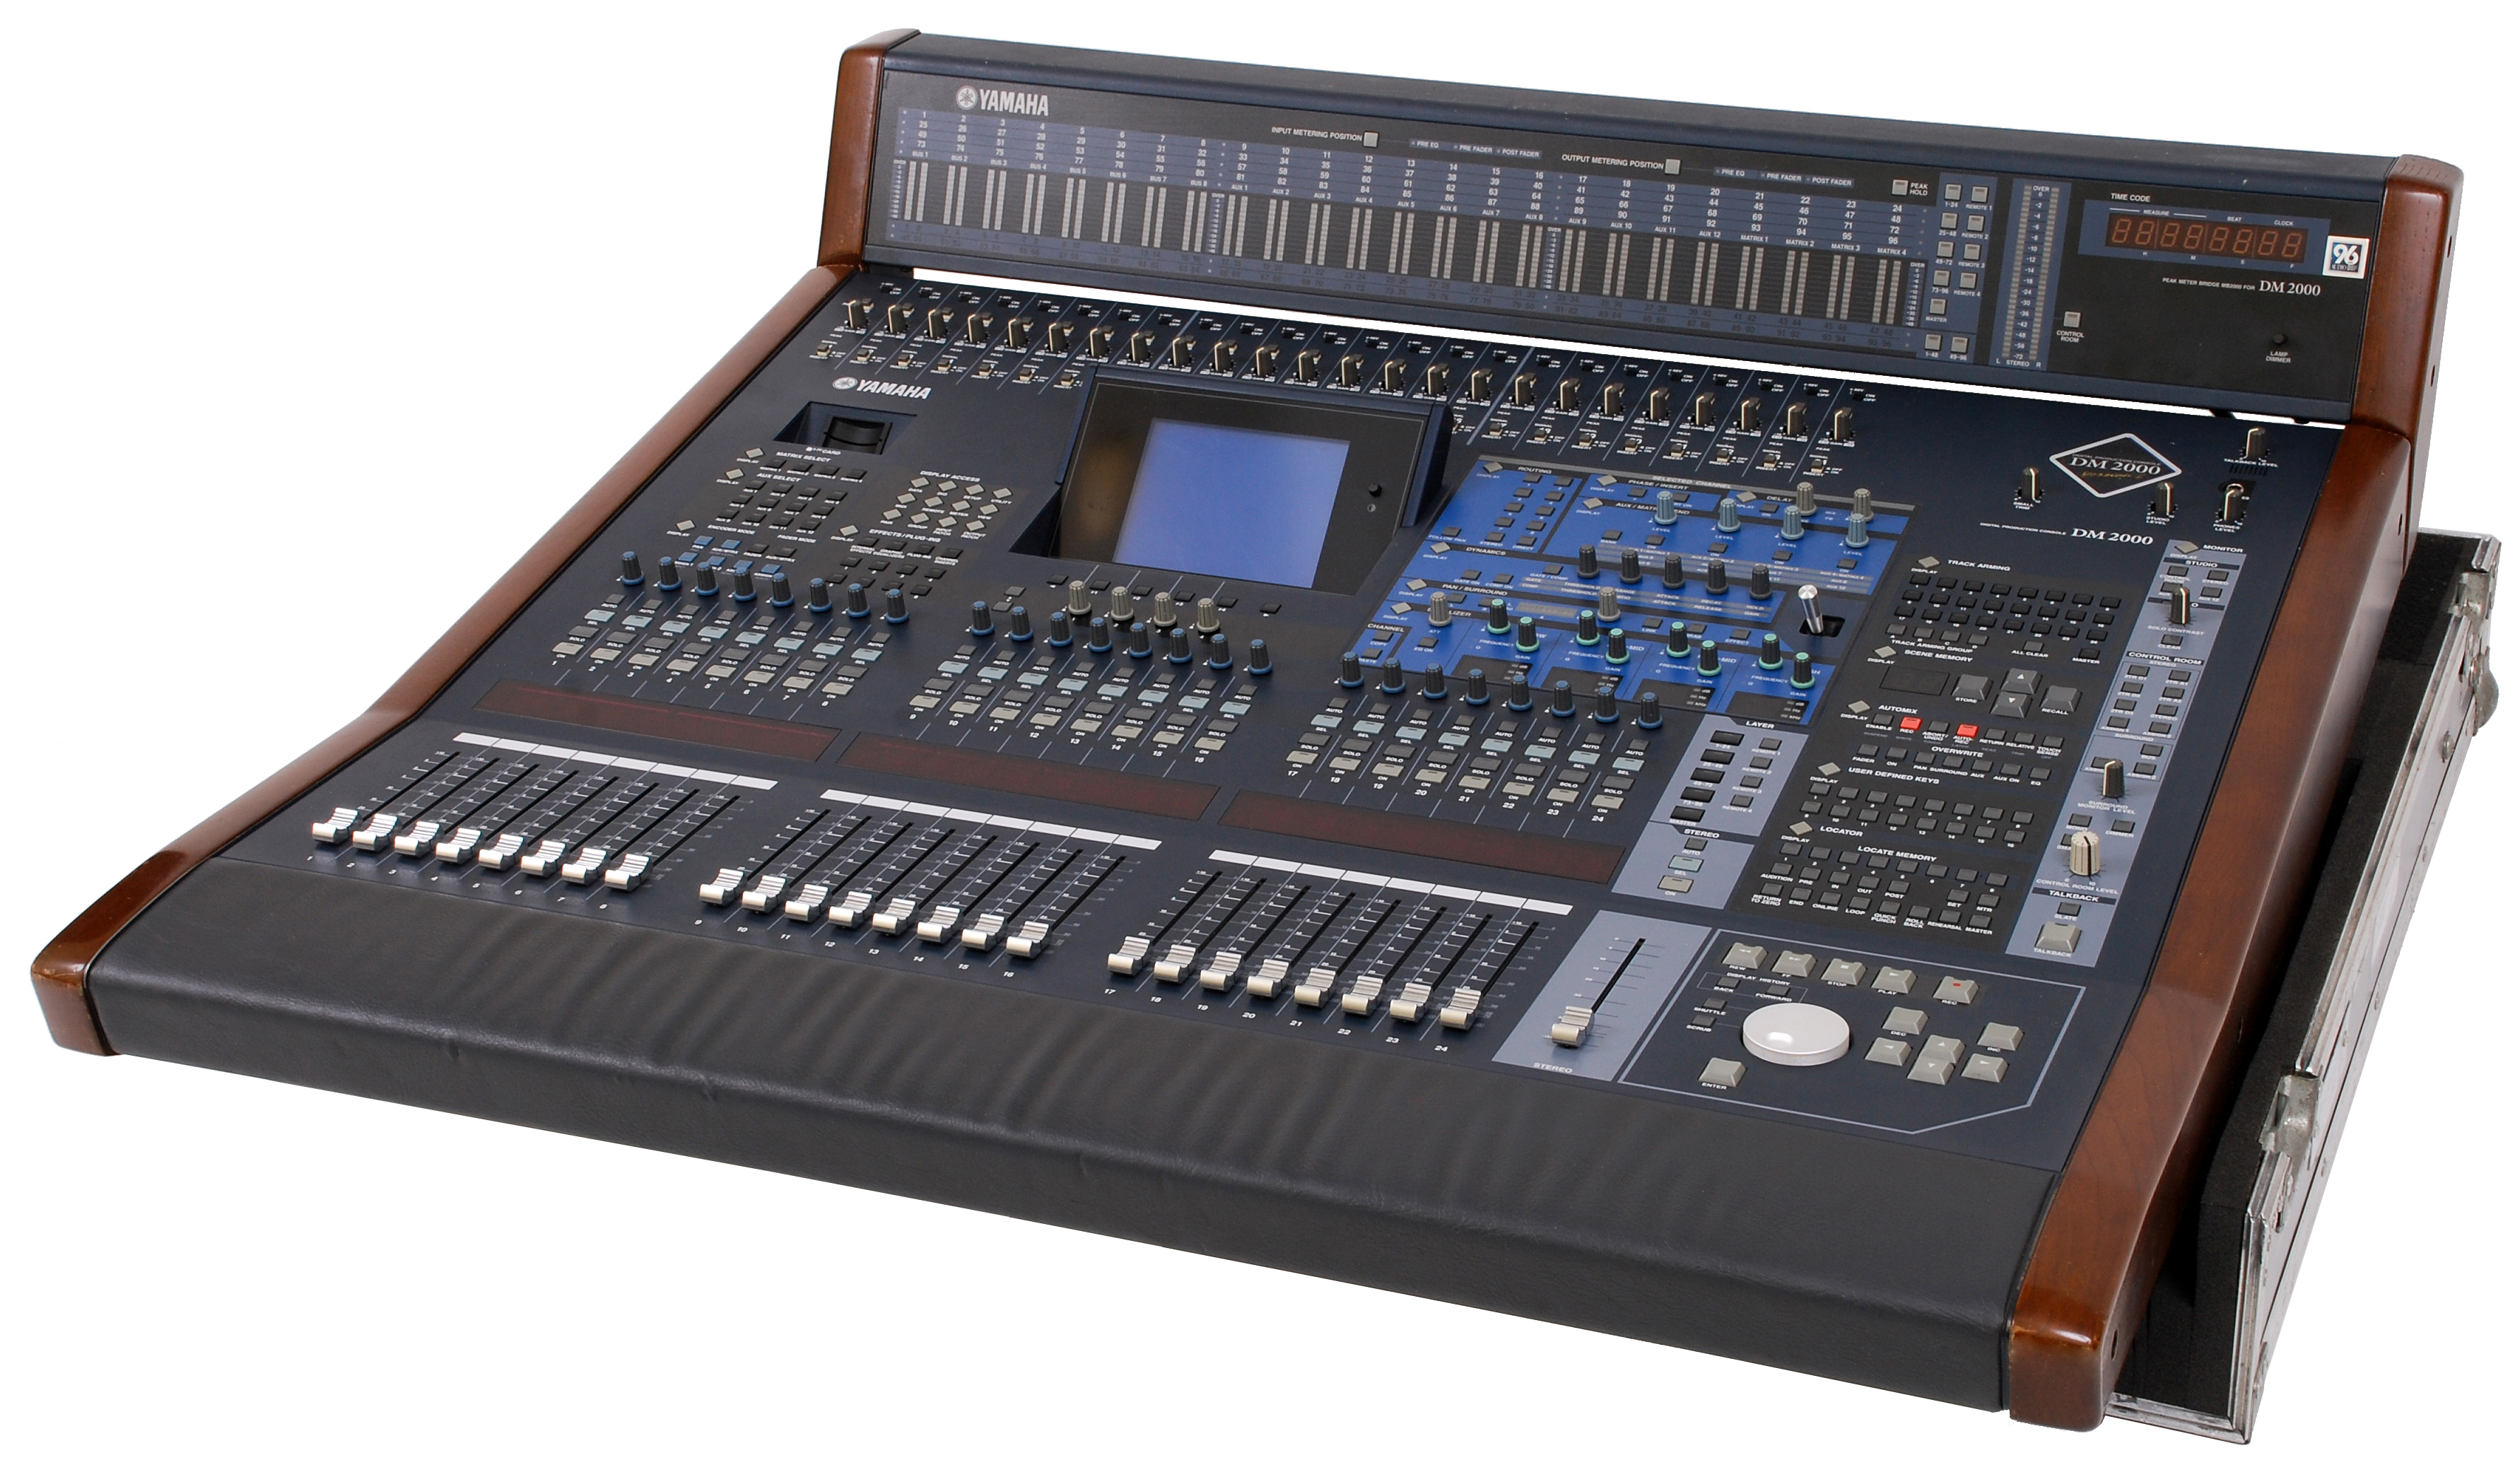 Yamaha pro audio images for Yamaha pro audio